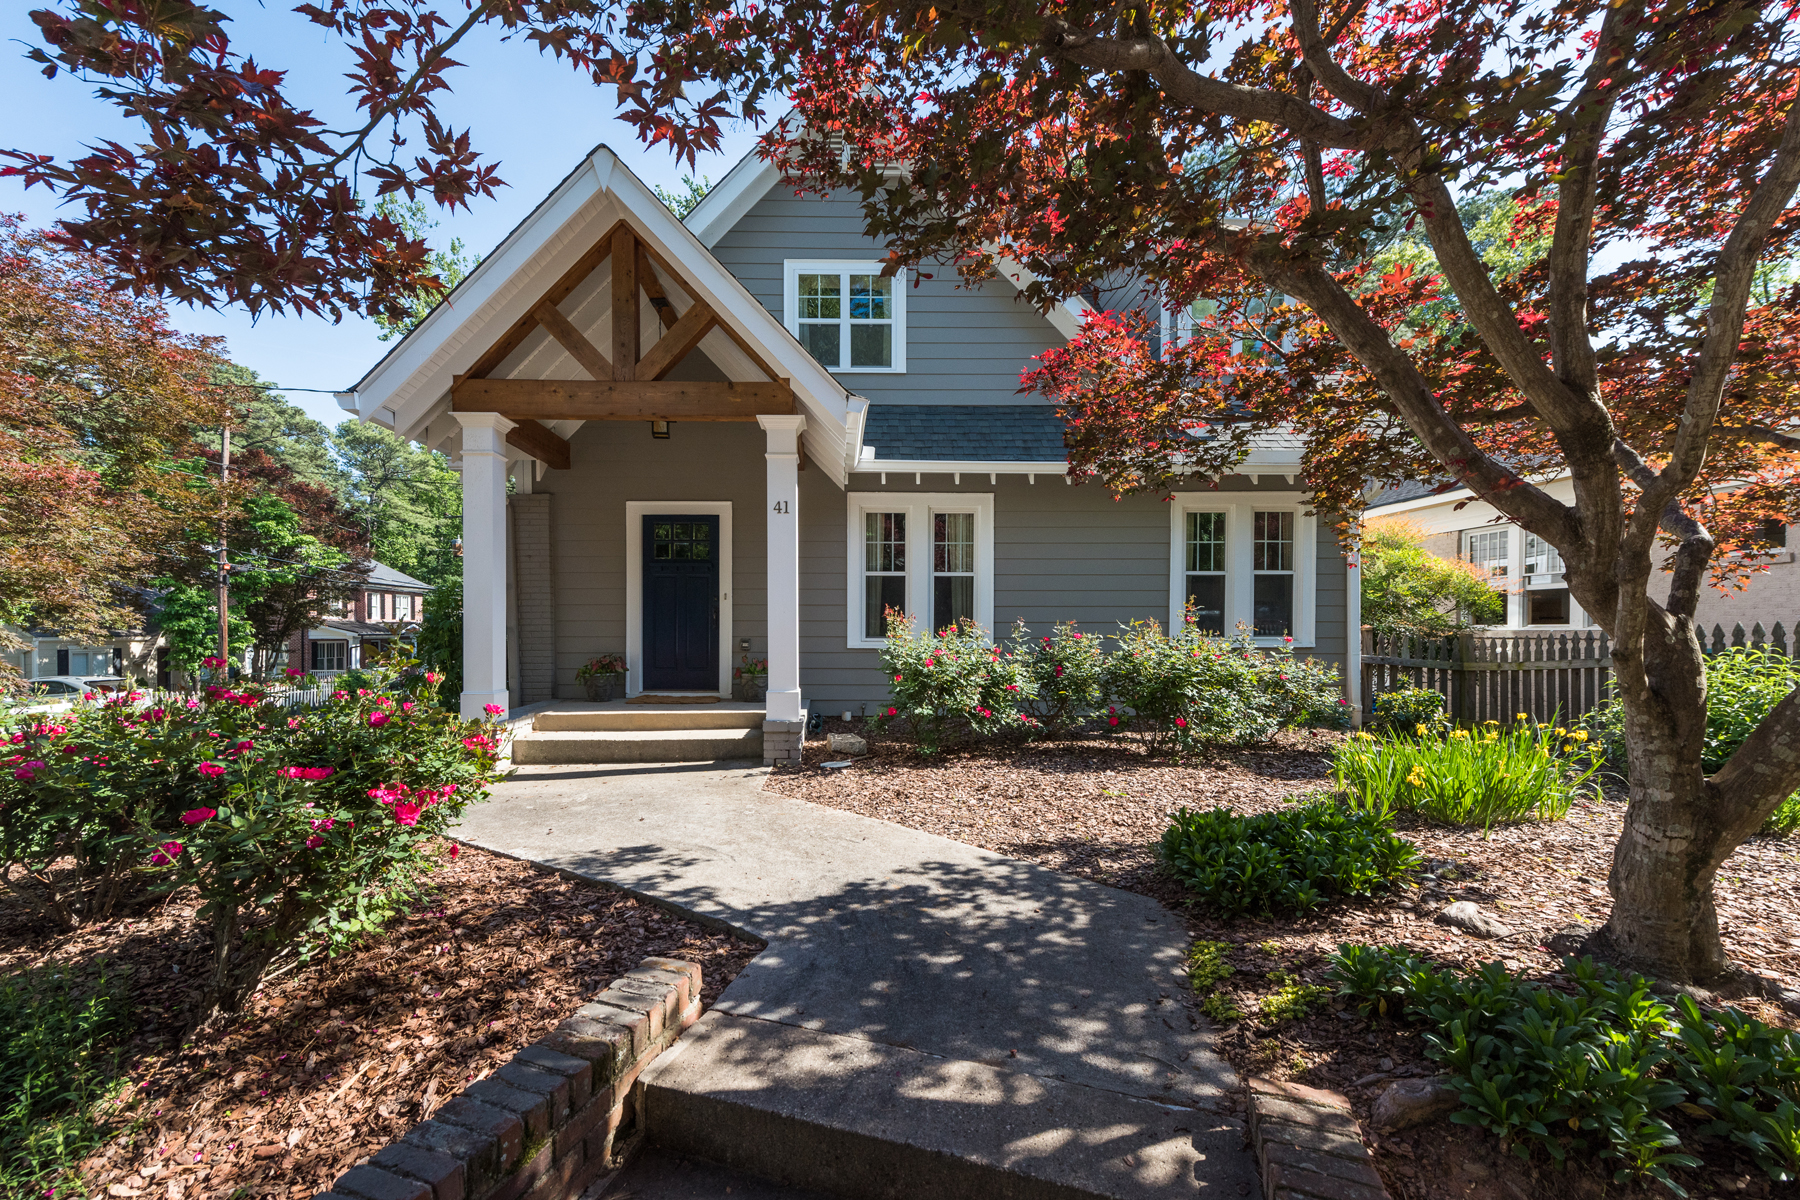 Single Family Home for Sale at Charming Renovated Home In One Of Buckhead's Most Popular Neighborhoods 41 East Drive NE Peachtree Hills, Atlanta, Georgia, 30305 United States